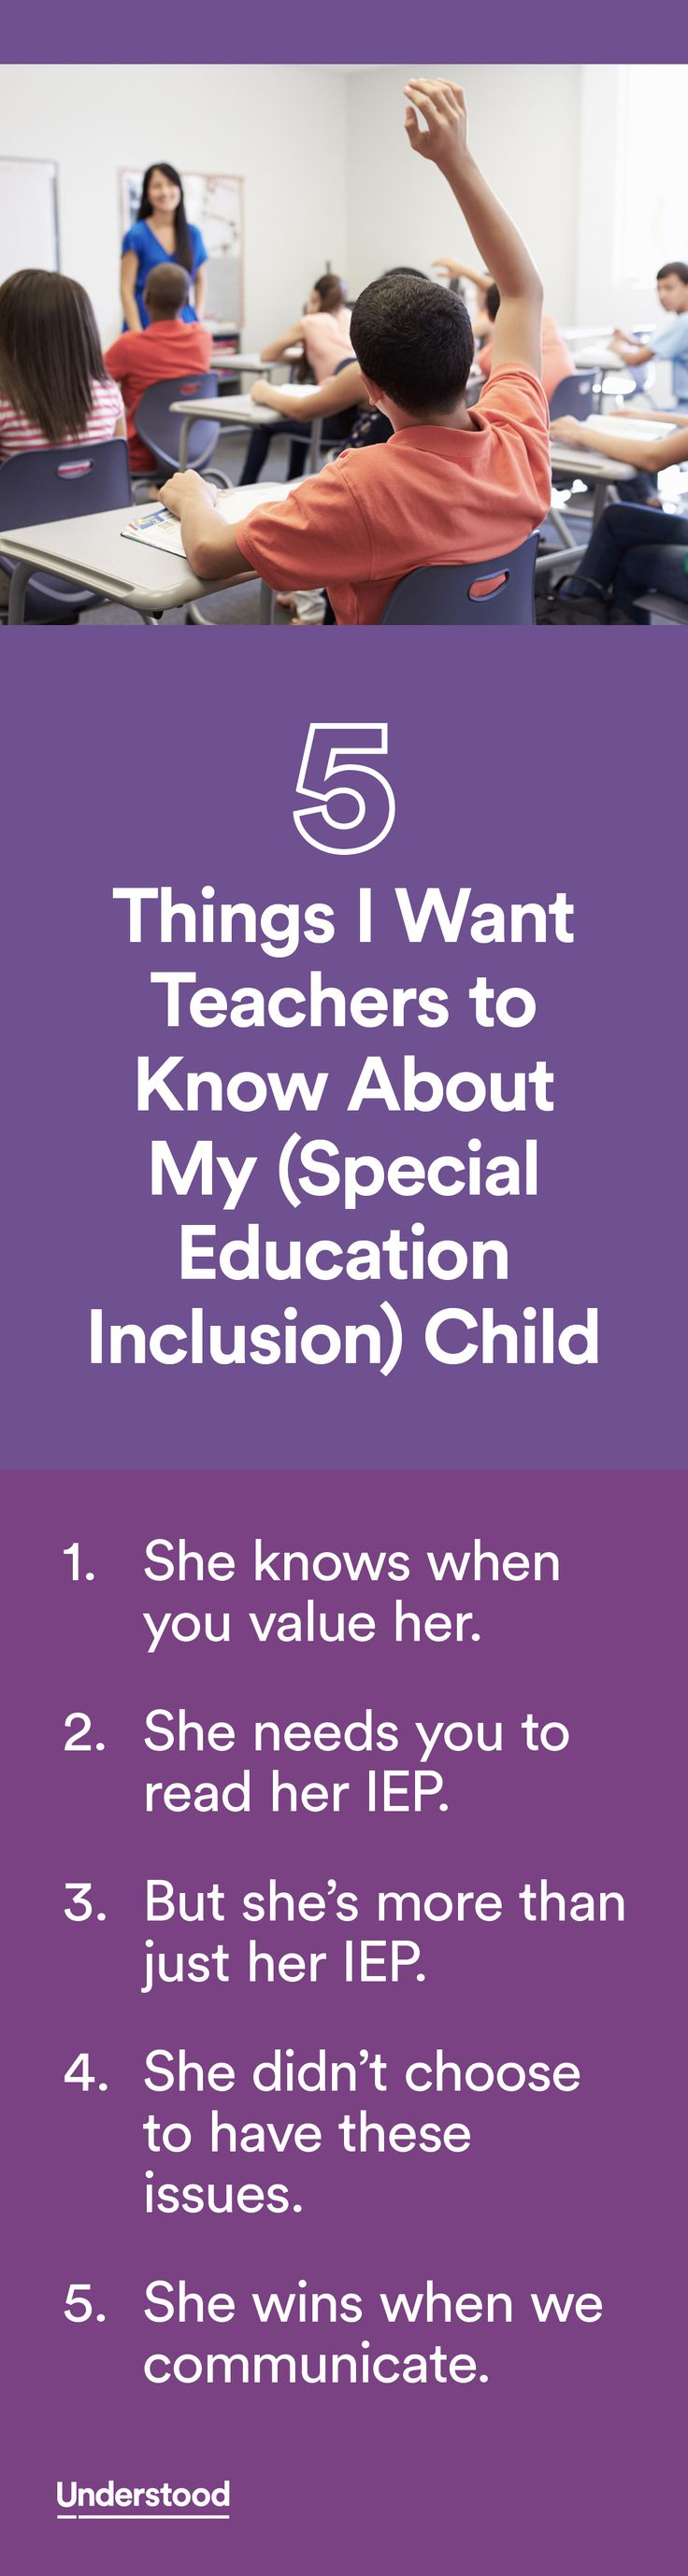 ptlls understanding of inclusive learning and